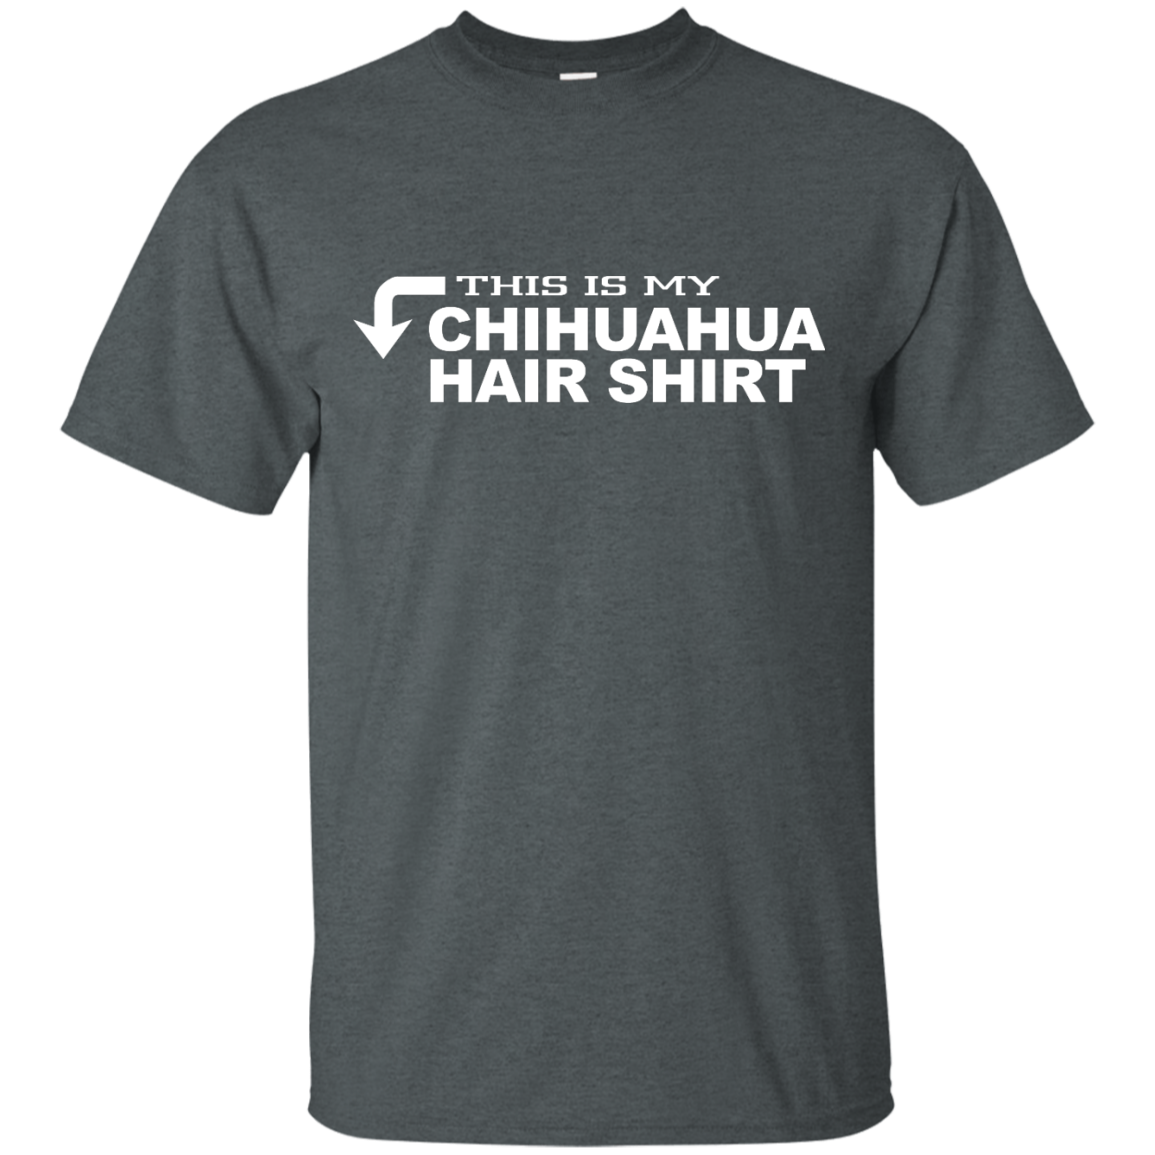 This Is My Chihuahua Hair Shirt - OMG I Love Dogs